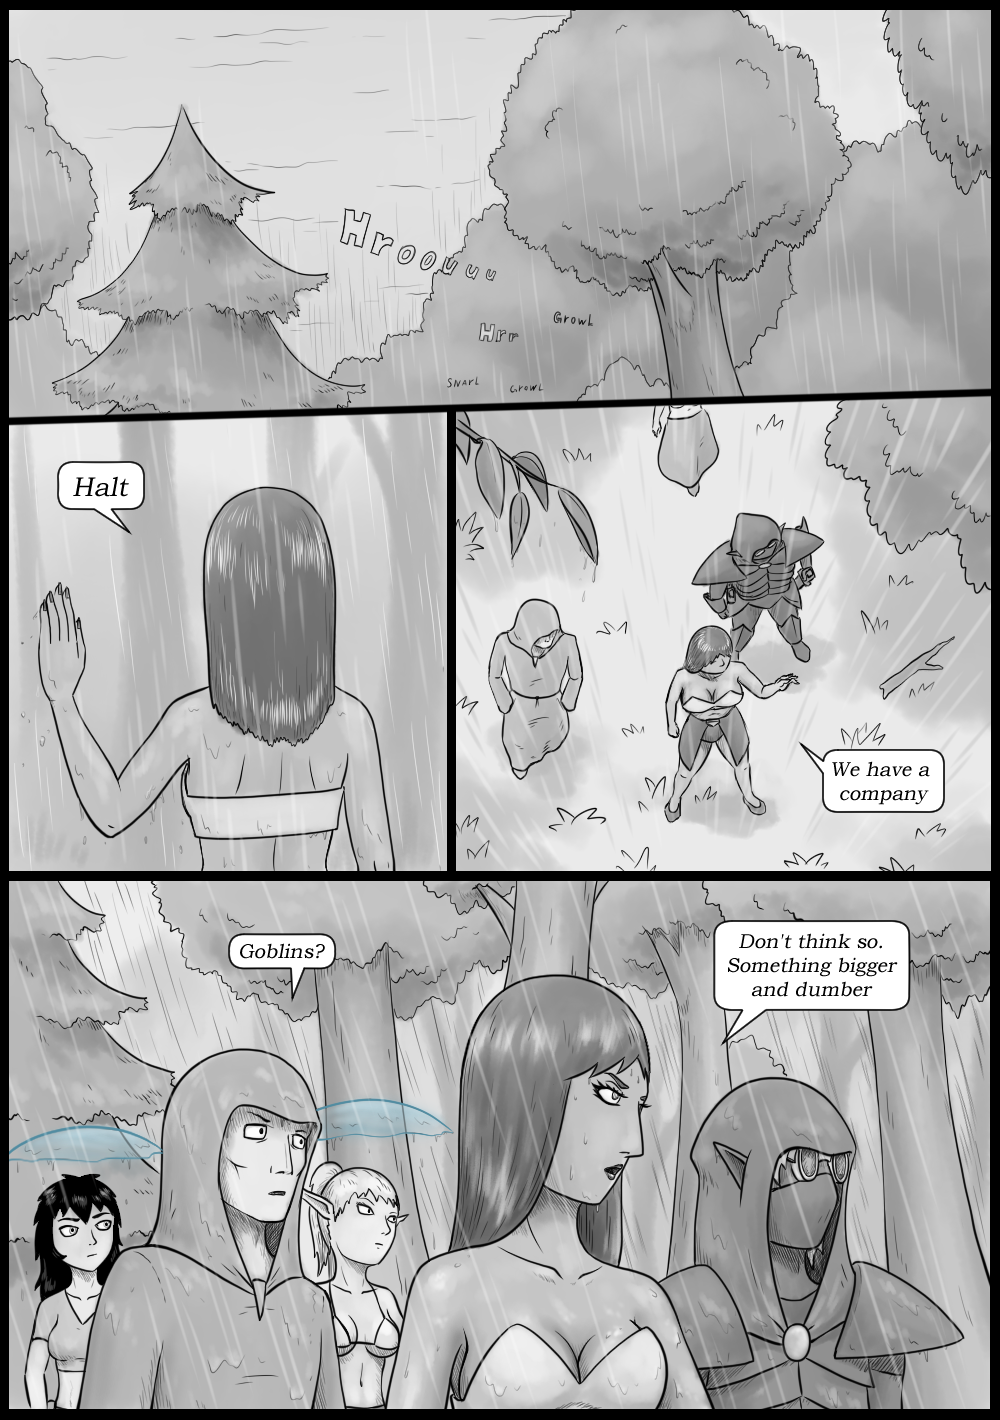 Page 23 - Never a peaceful moment